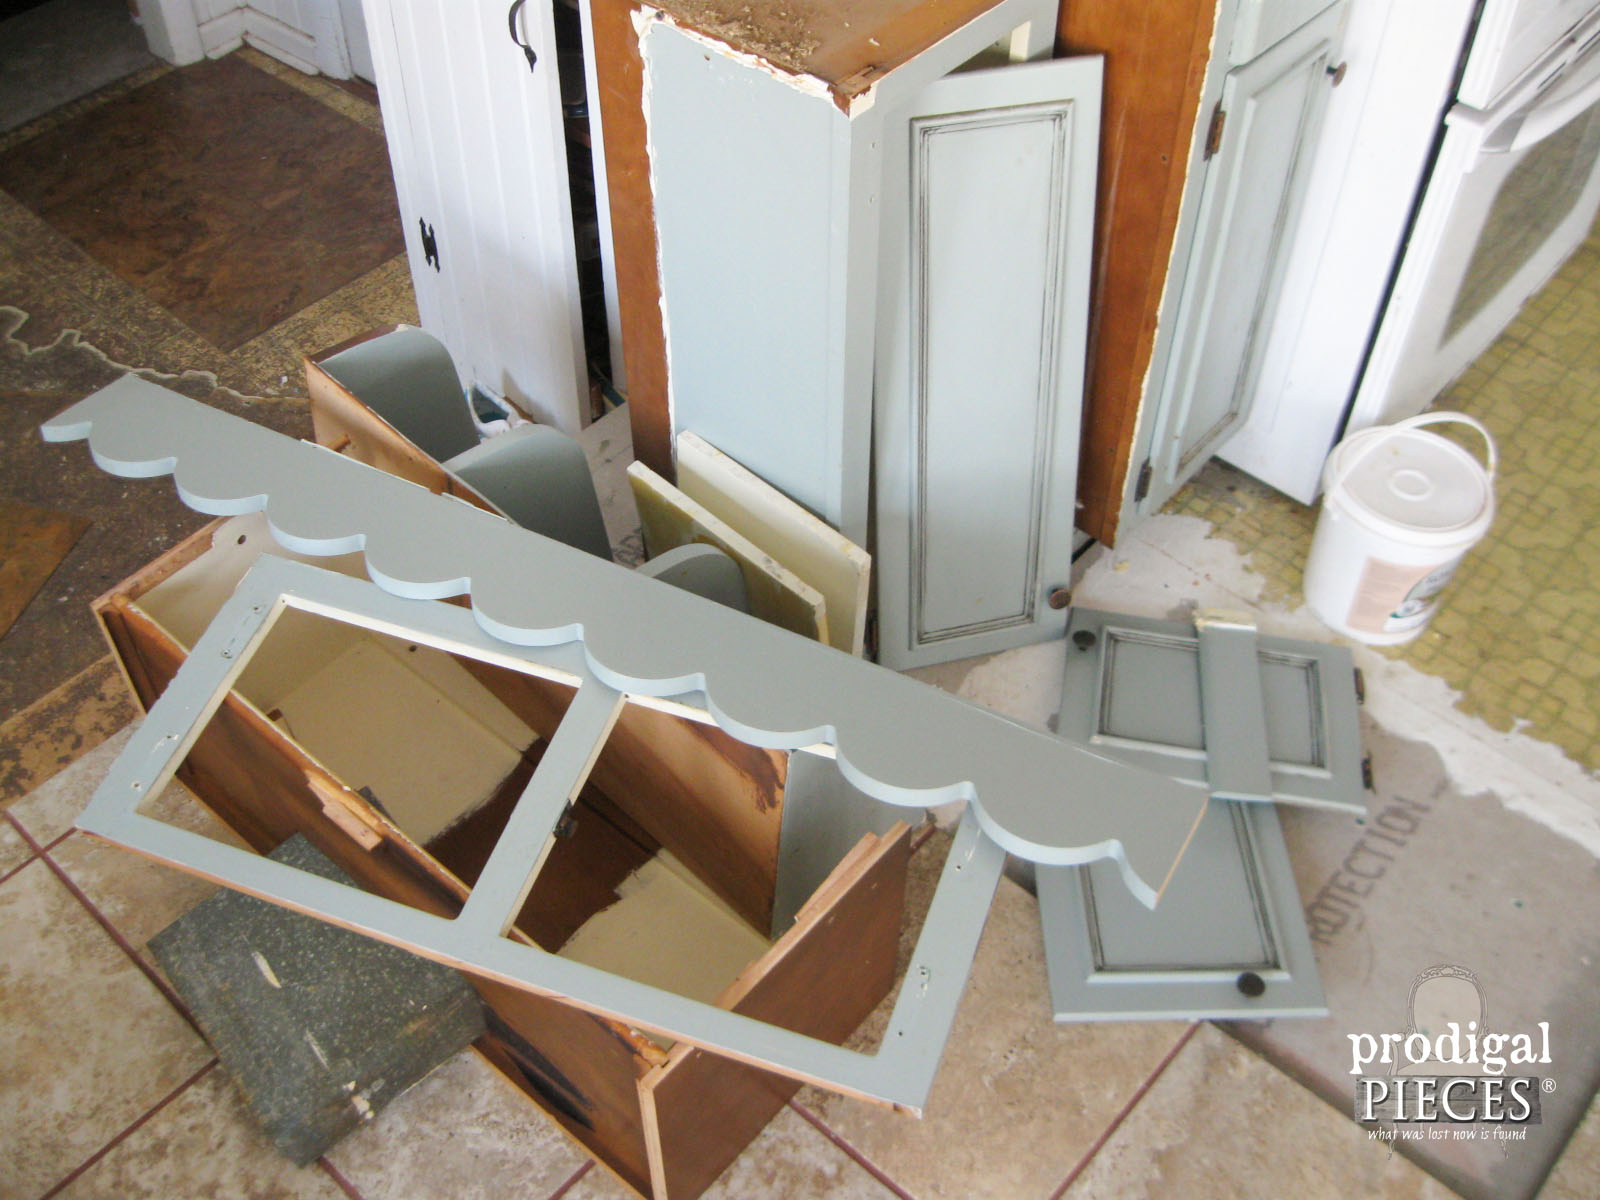 Repurposed Kitchen Cabinets into Home Decor Prodigal Pieces